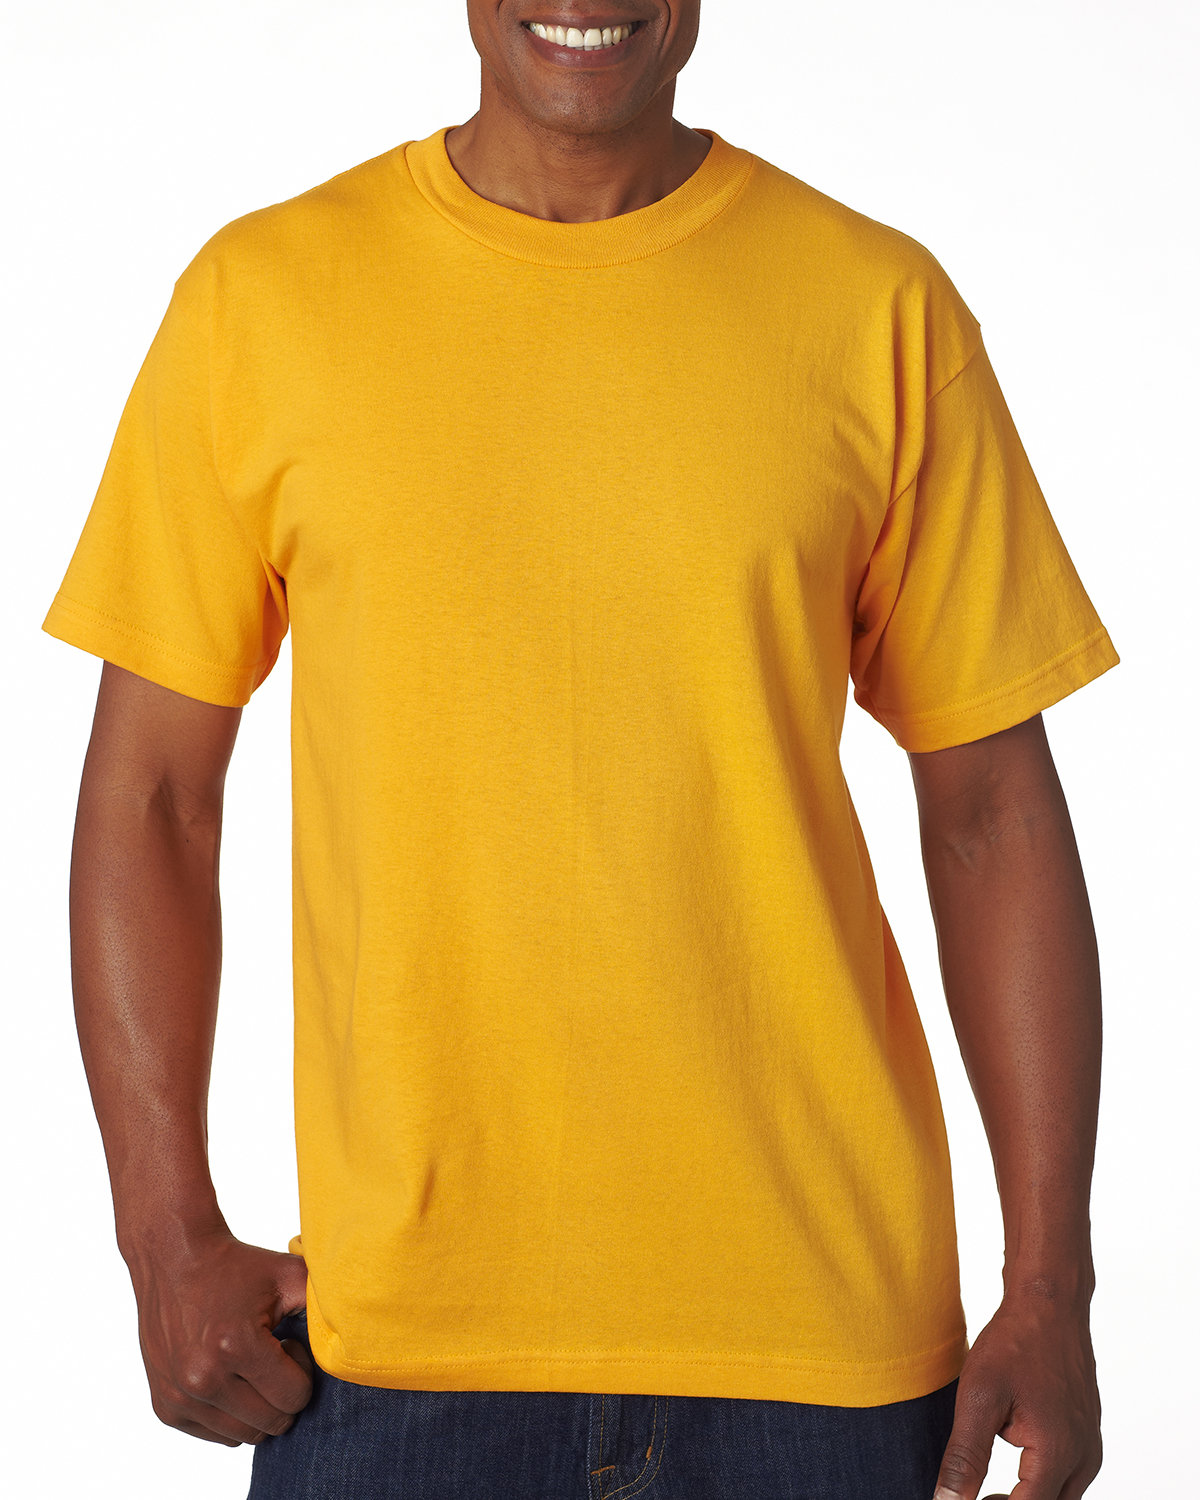 Bayside Adult 6.1 oz., 100% Cotton T-Shirt GOLD